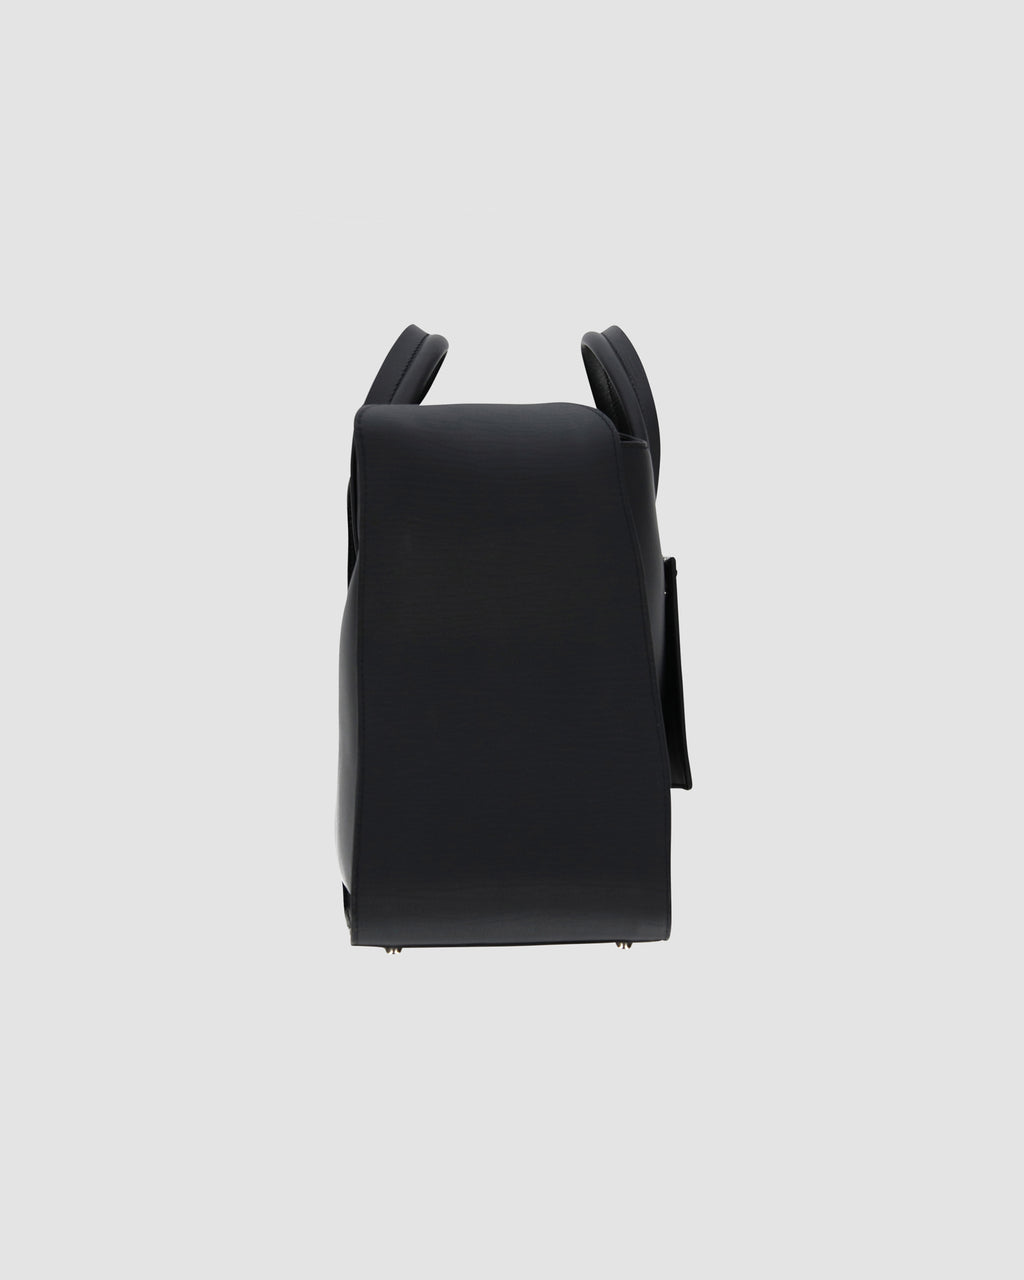 1017 ALYX 9SM | SOFT BRIE BAG | Bag | Accessories, Bag Online, Bags, Black, F19, Woman